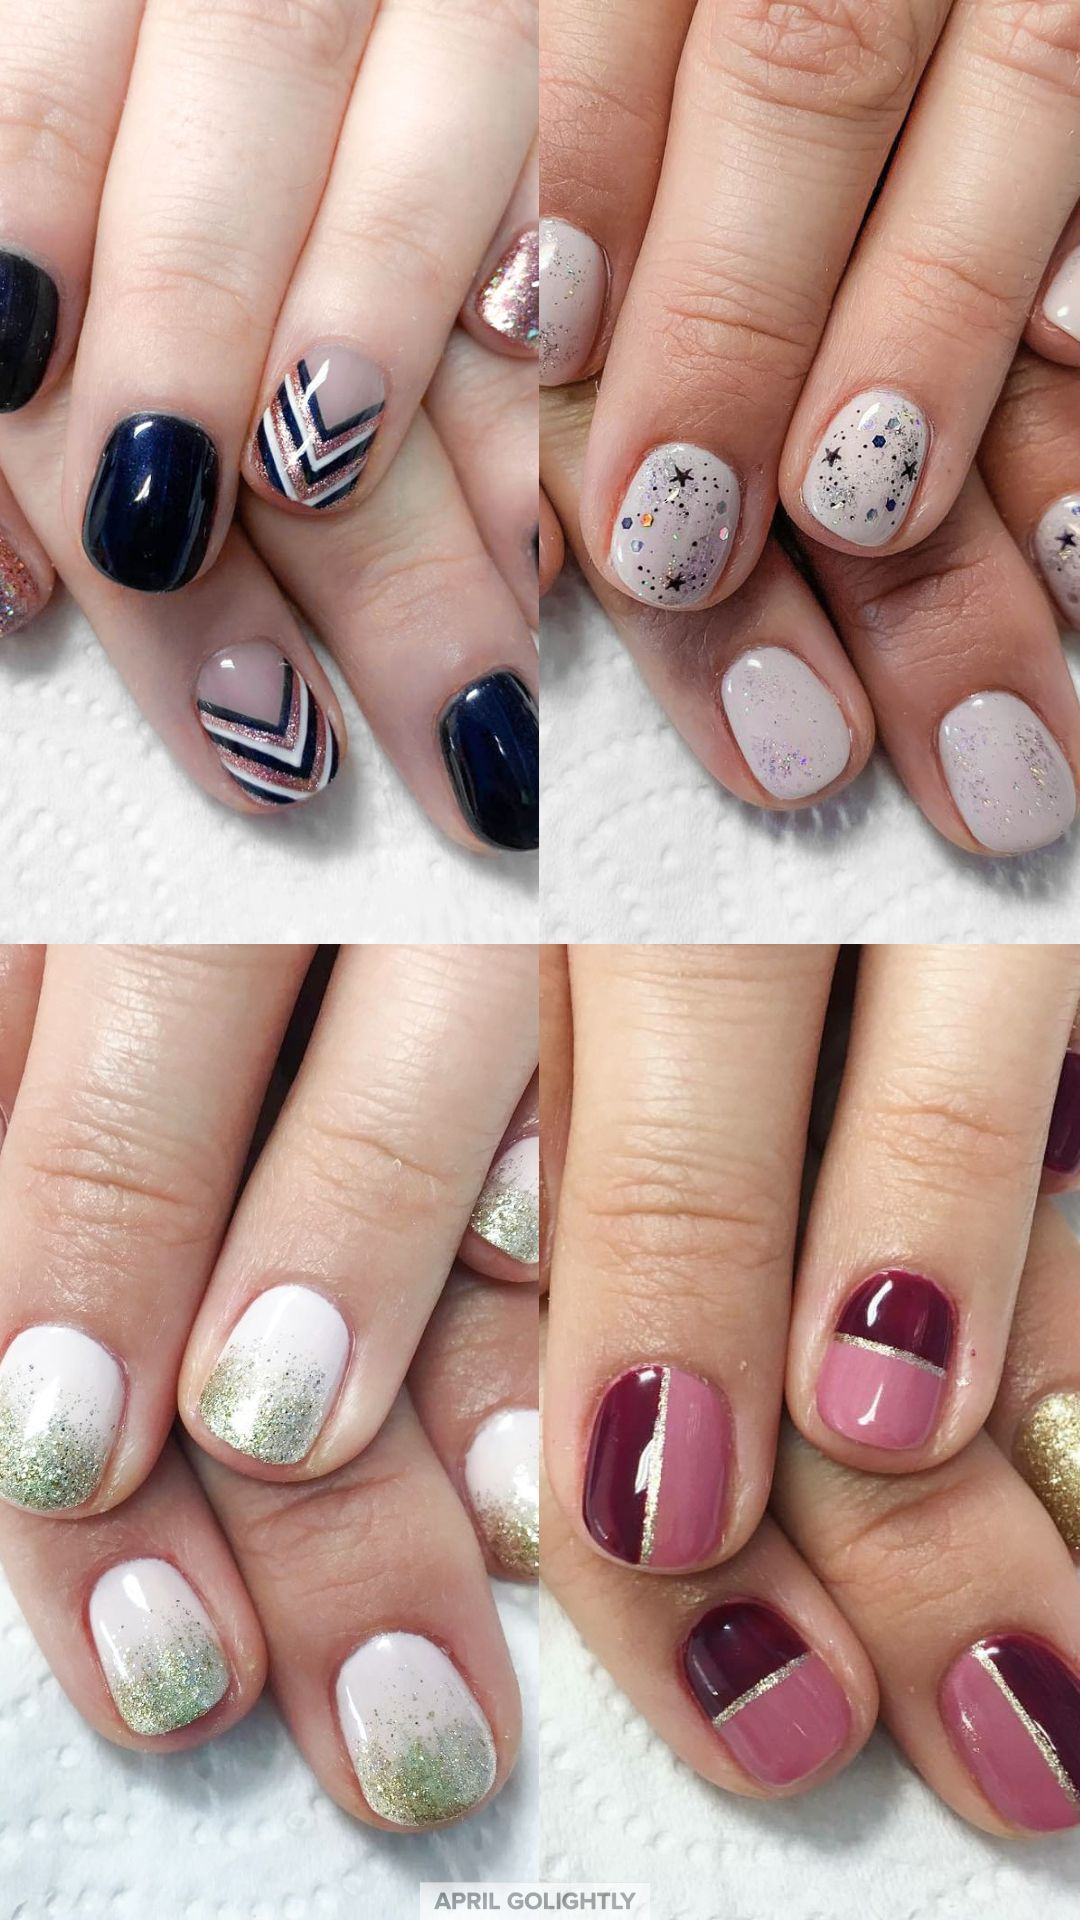 15 Ideas for January Nails 2019 in 2020